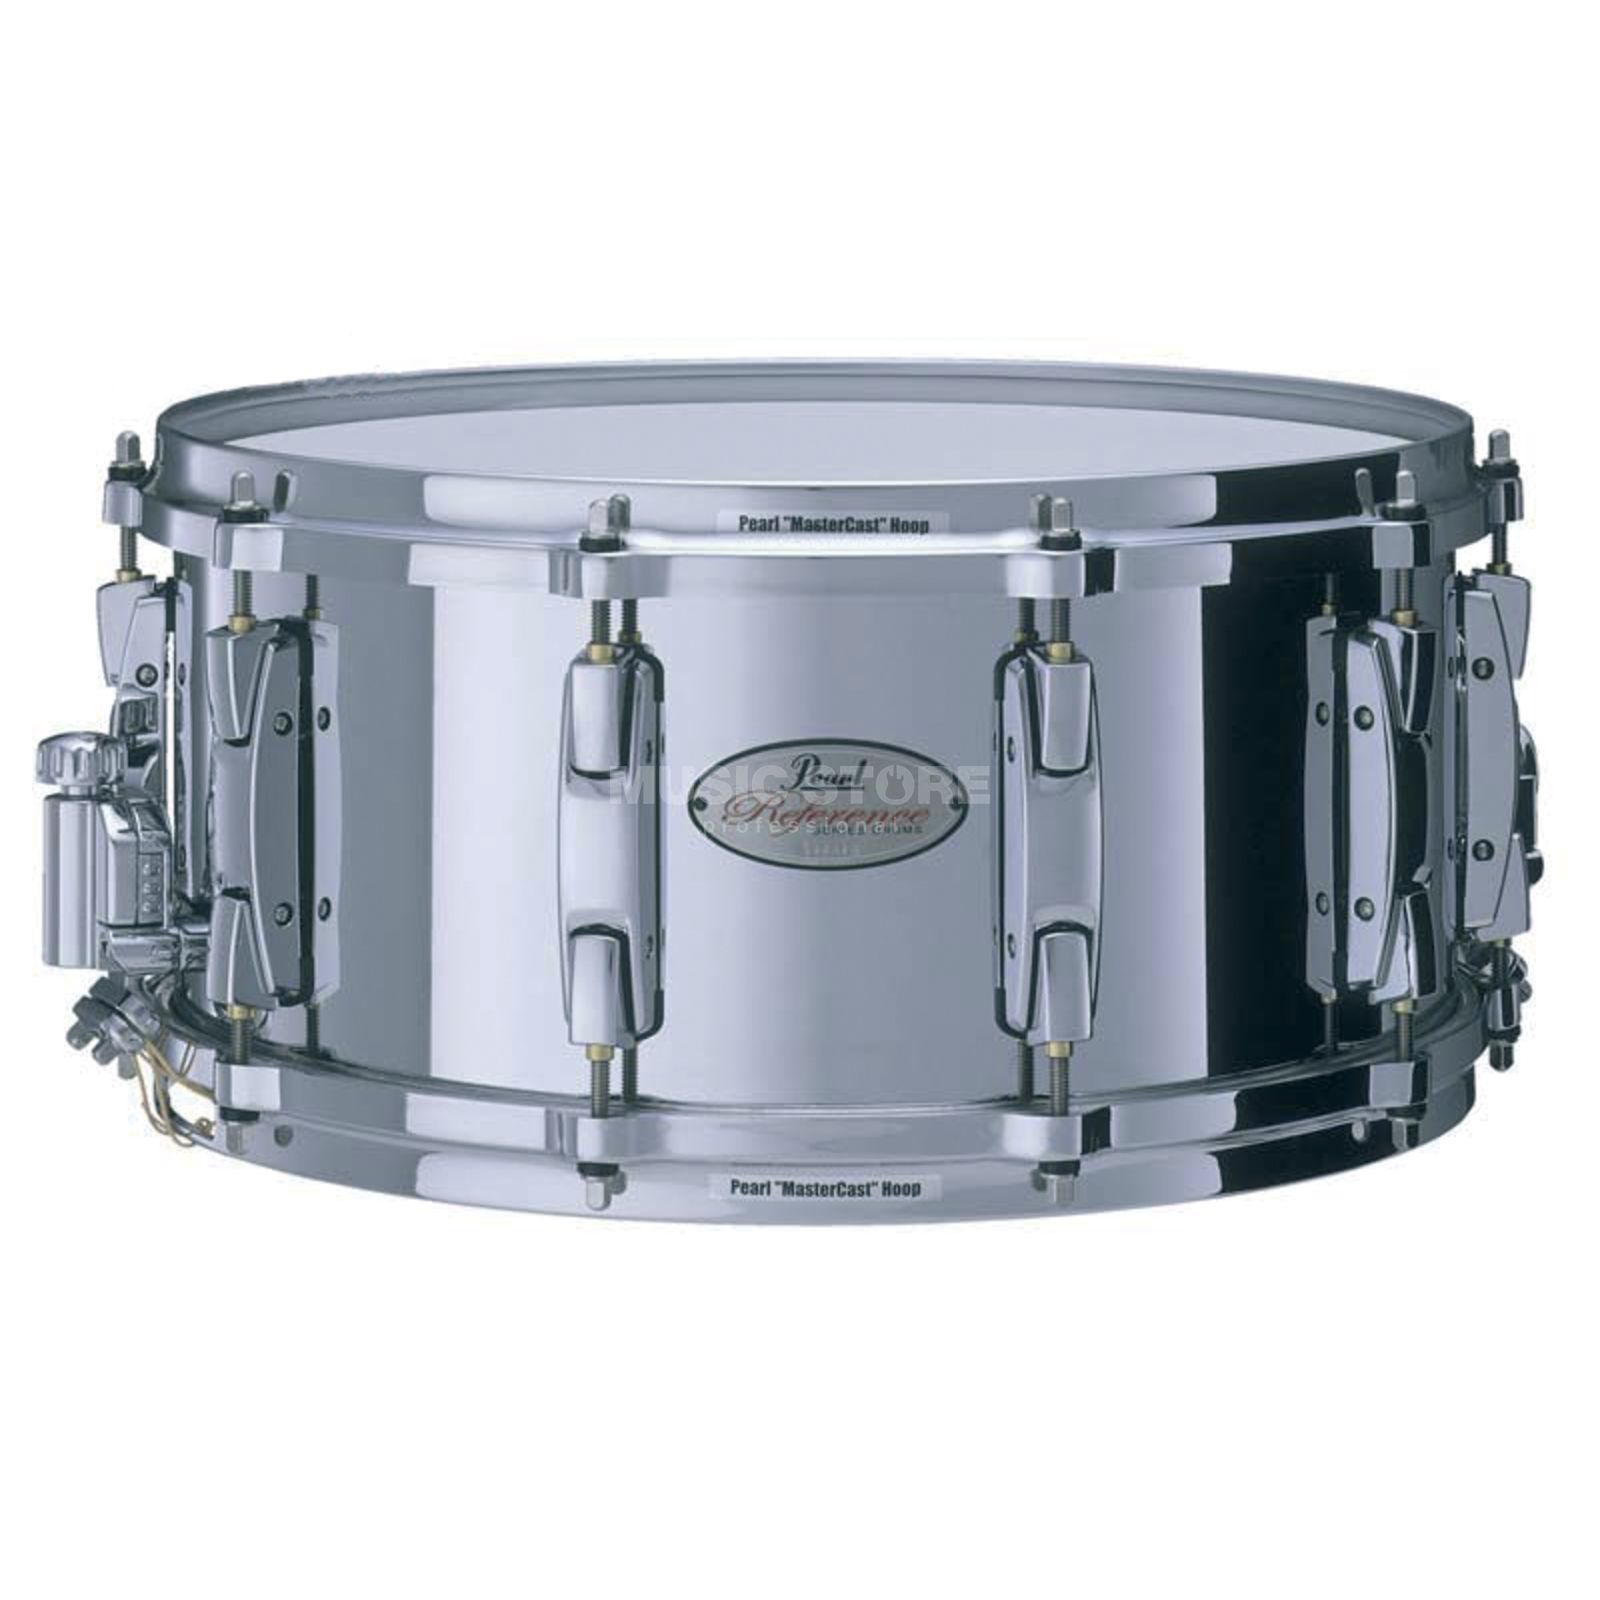 "Pearl RFS1465 Reference Snare 14""x6,5"", Steel Produktbild"